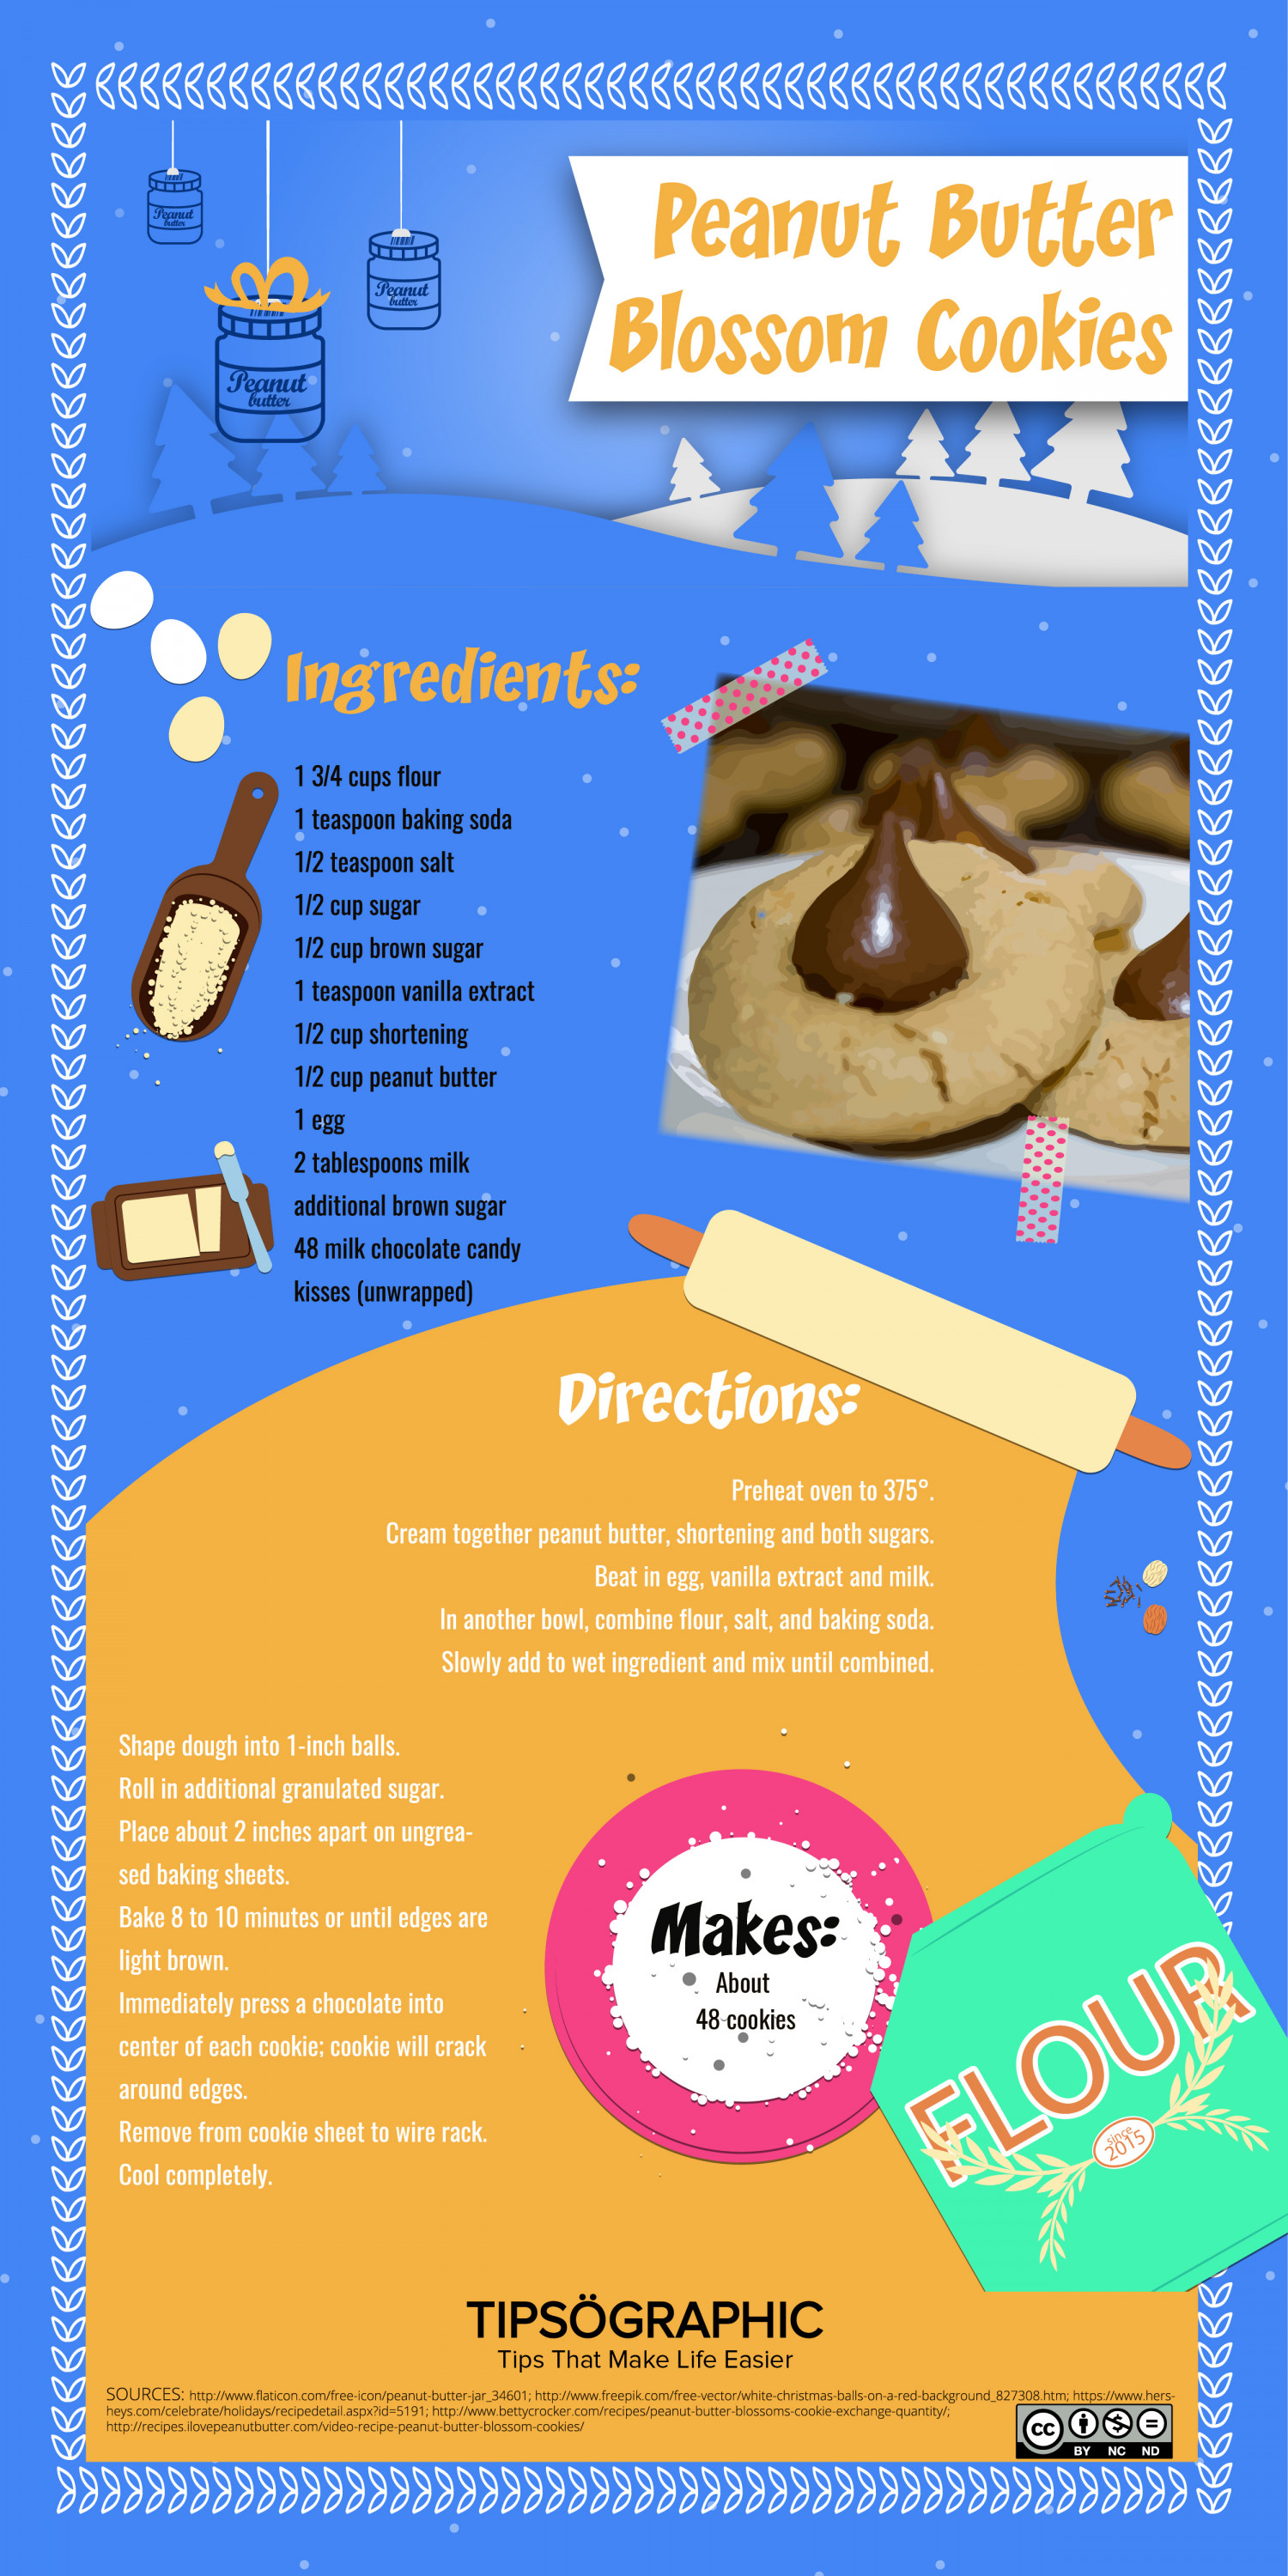 Peanut Butter Blossom Cookies Recipe Infographic